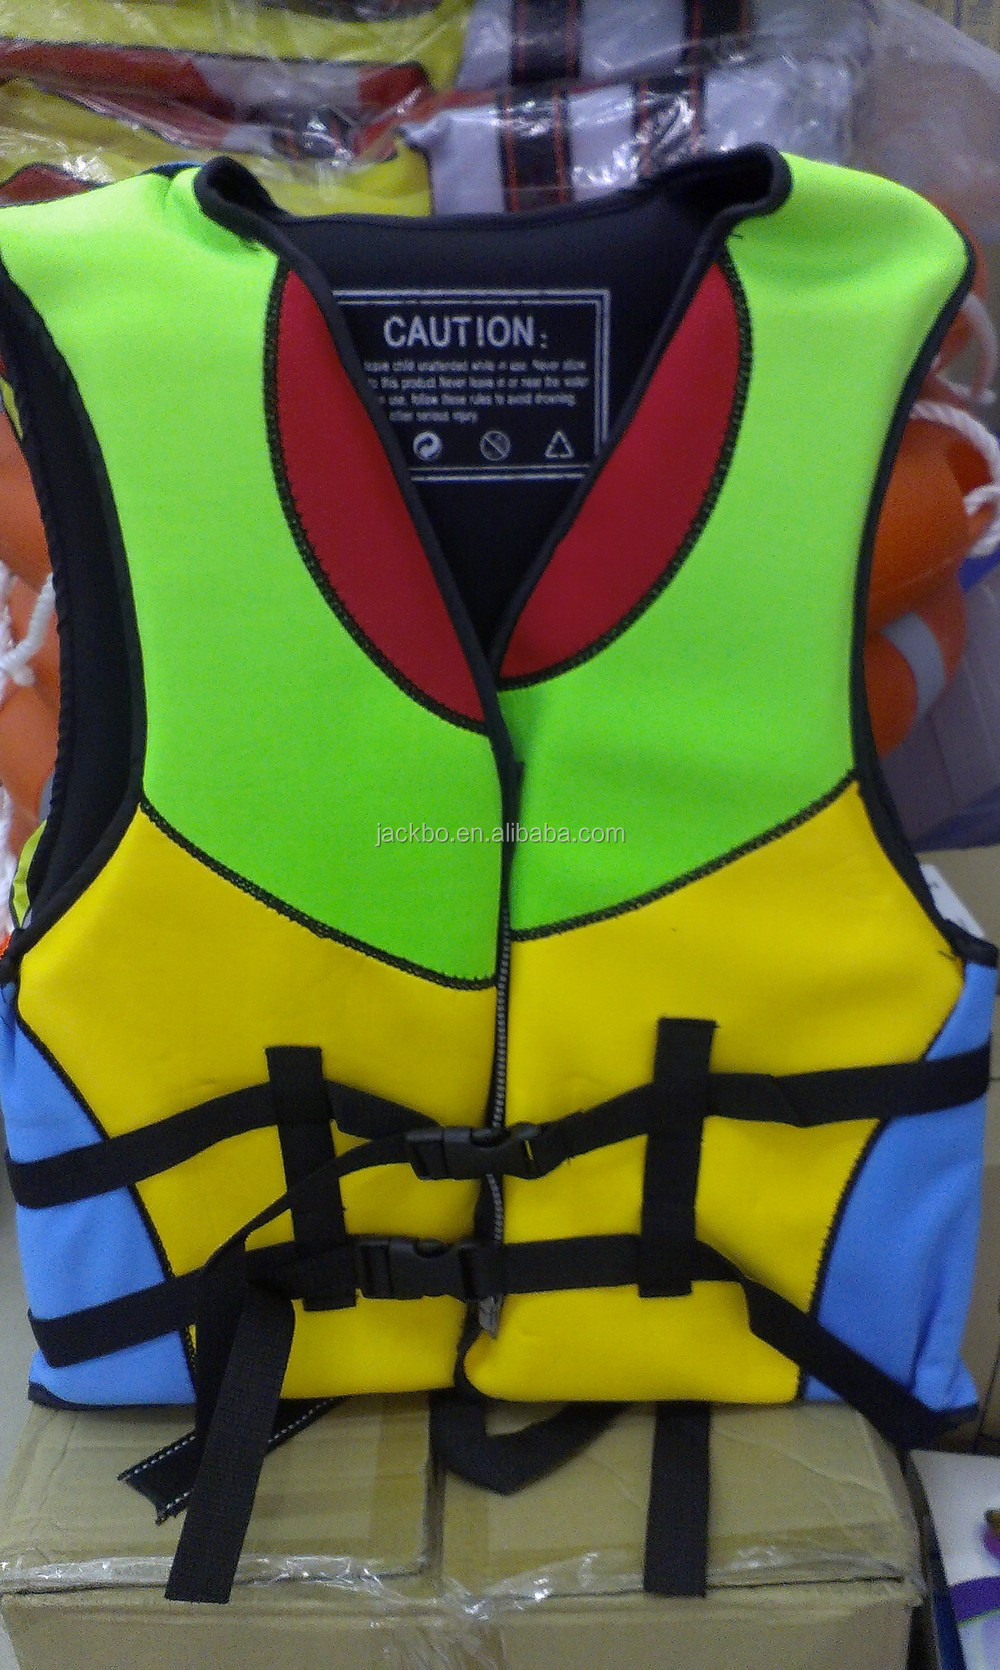 Swimming pool life protective floating equipment durable children/adult life jacket